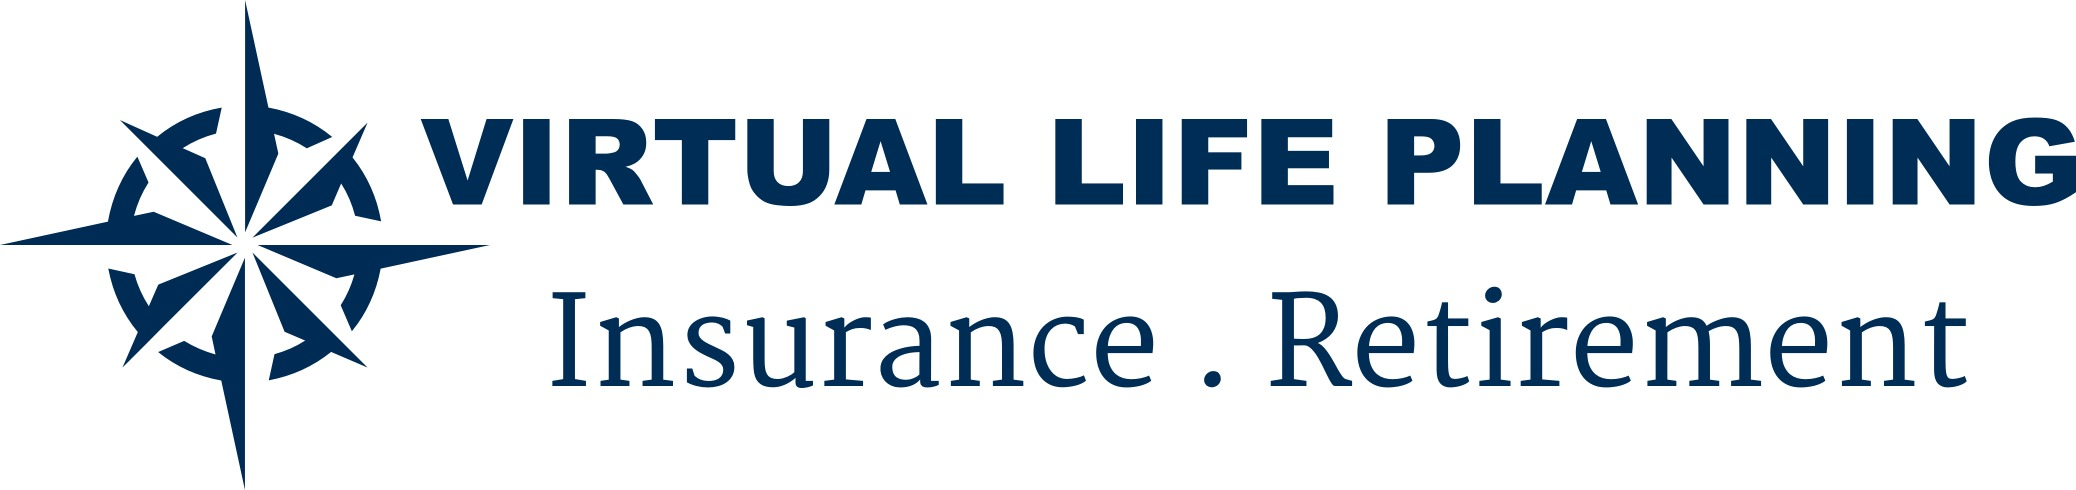 Term Life Insurance Instant Quotes Virtual Life Planning  Term Life Quotes